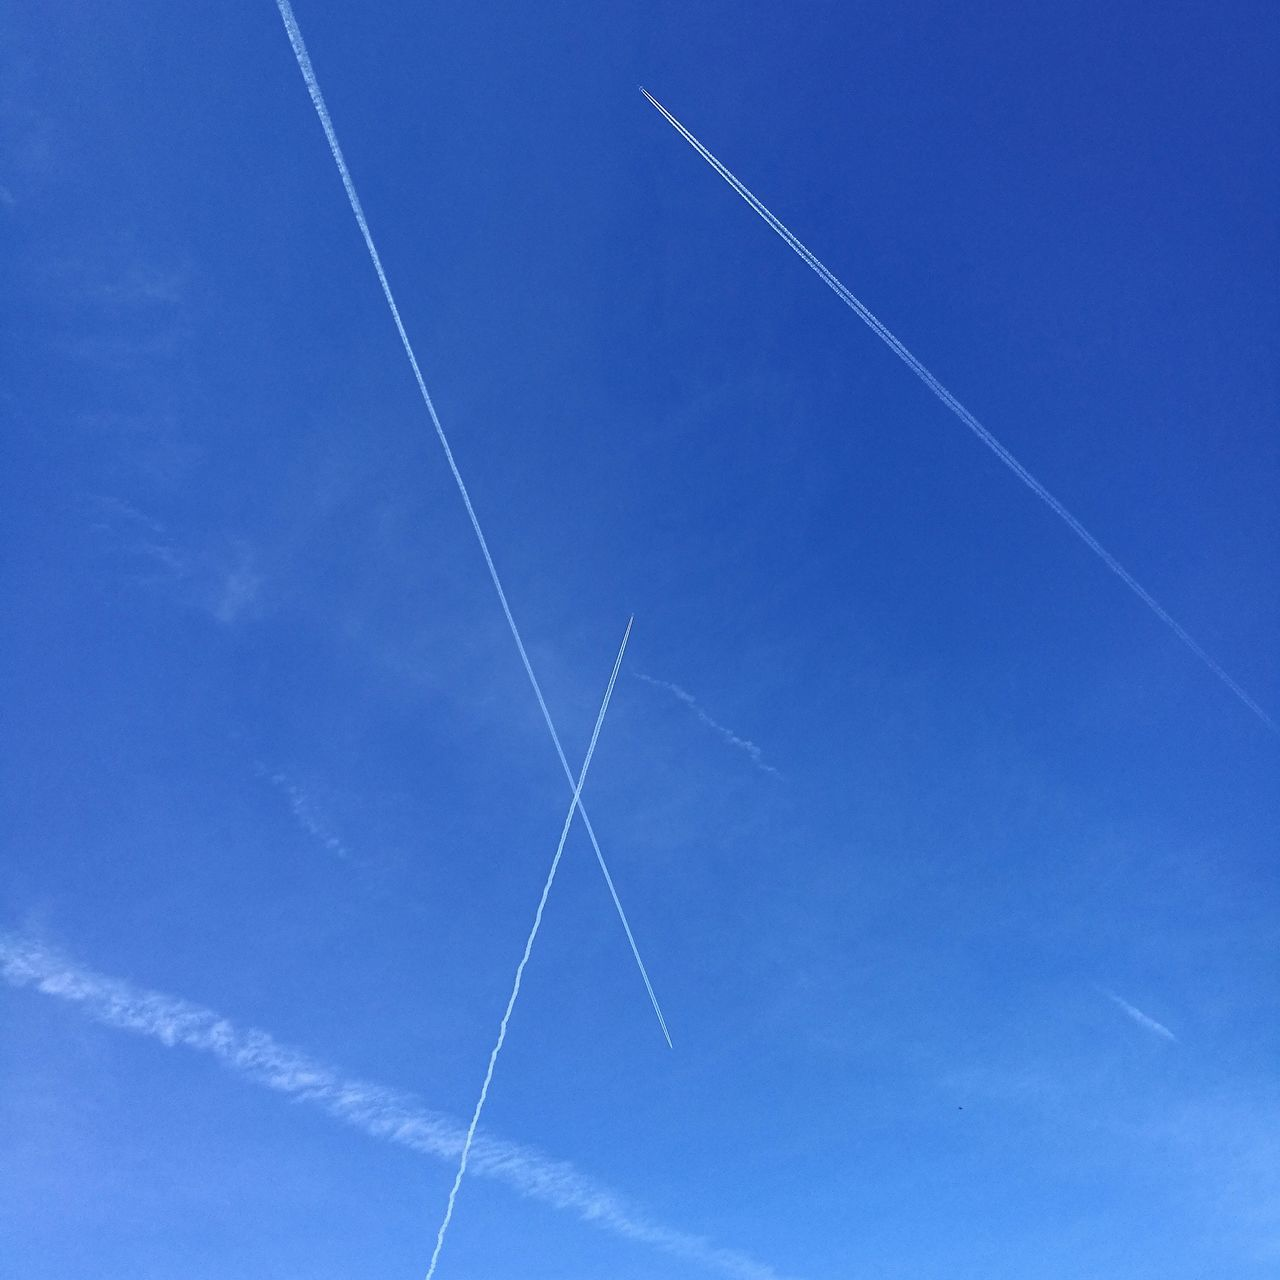 Blue Vapor Trail No People Mid-air Airplane Airshow Low Angle View Day Sky Nature Outdoors Close-up Contrail